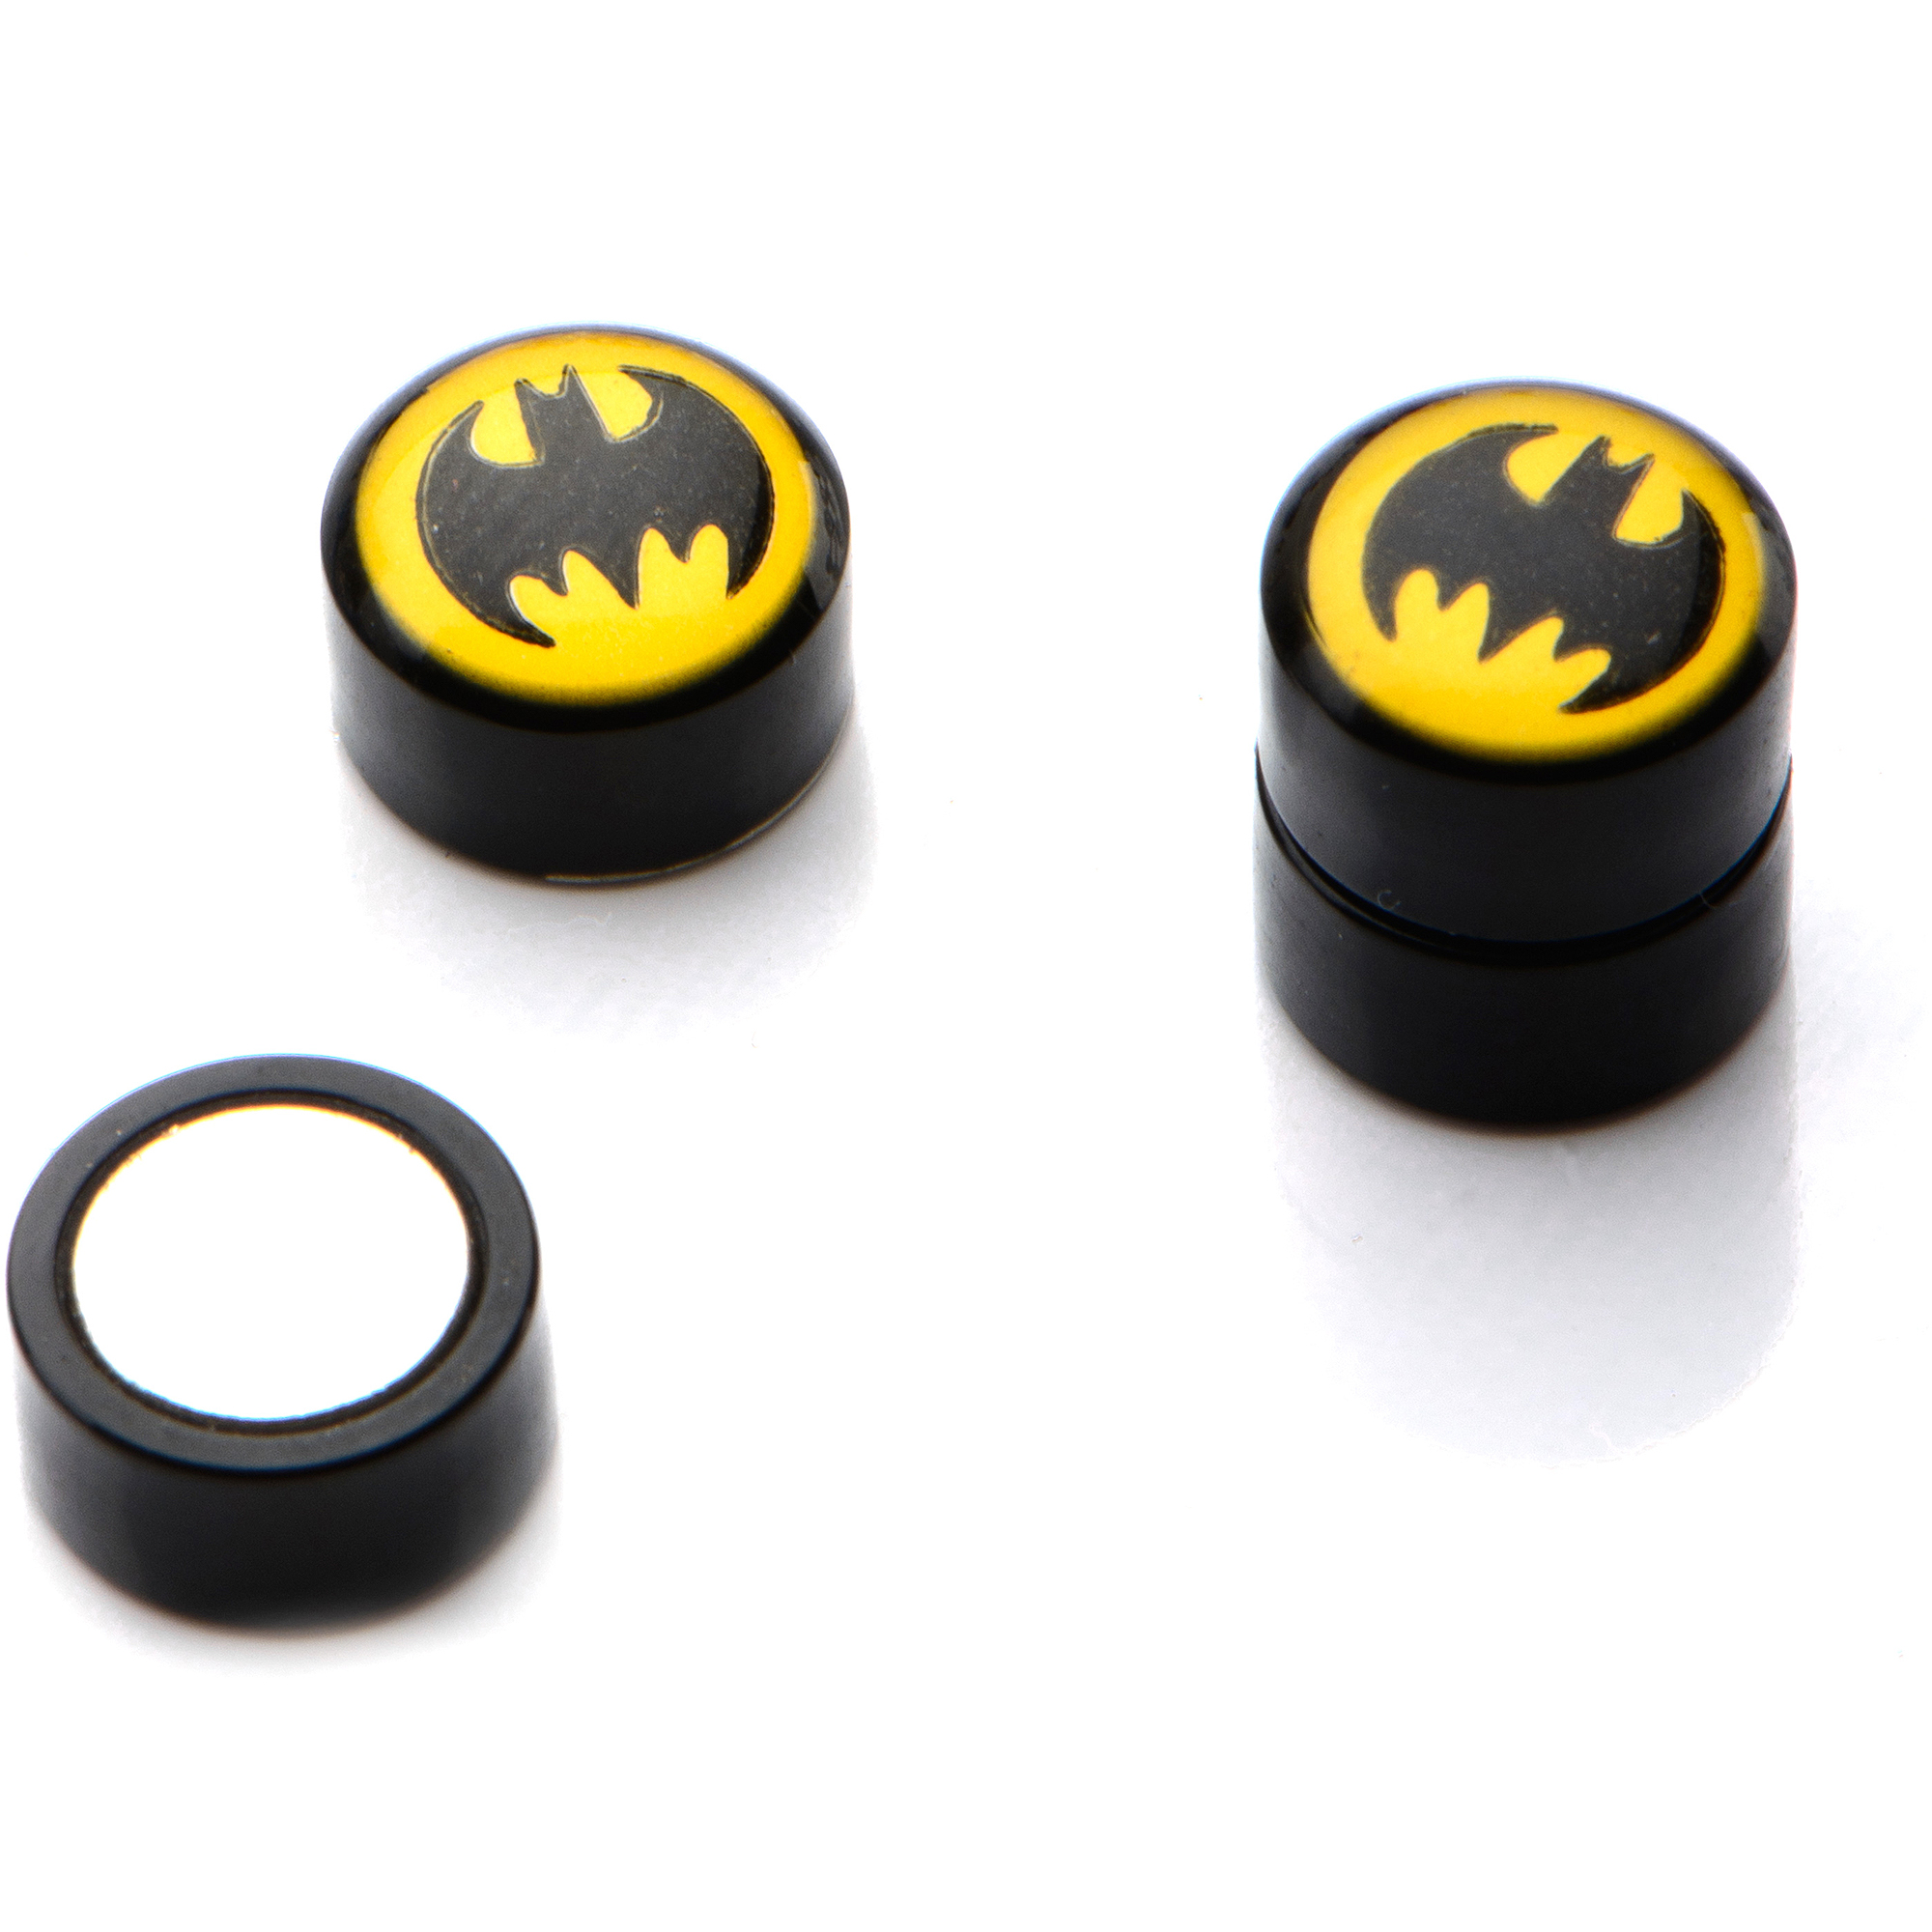 Officially Licensed DC Comics Body Jewelry Acrylic Magnetic Non-pierced Earrings with... by SalesOne LLC